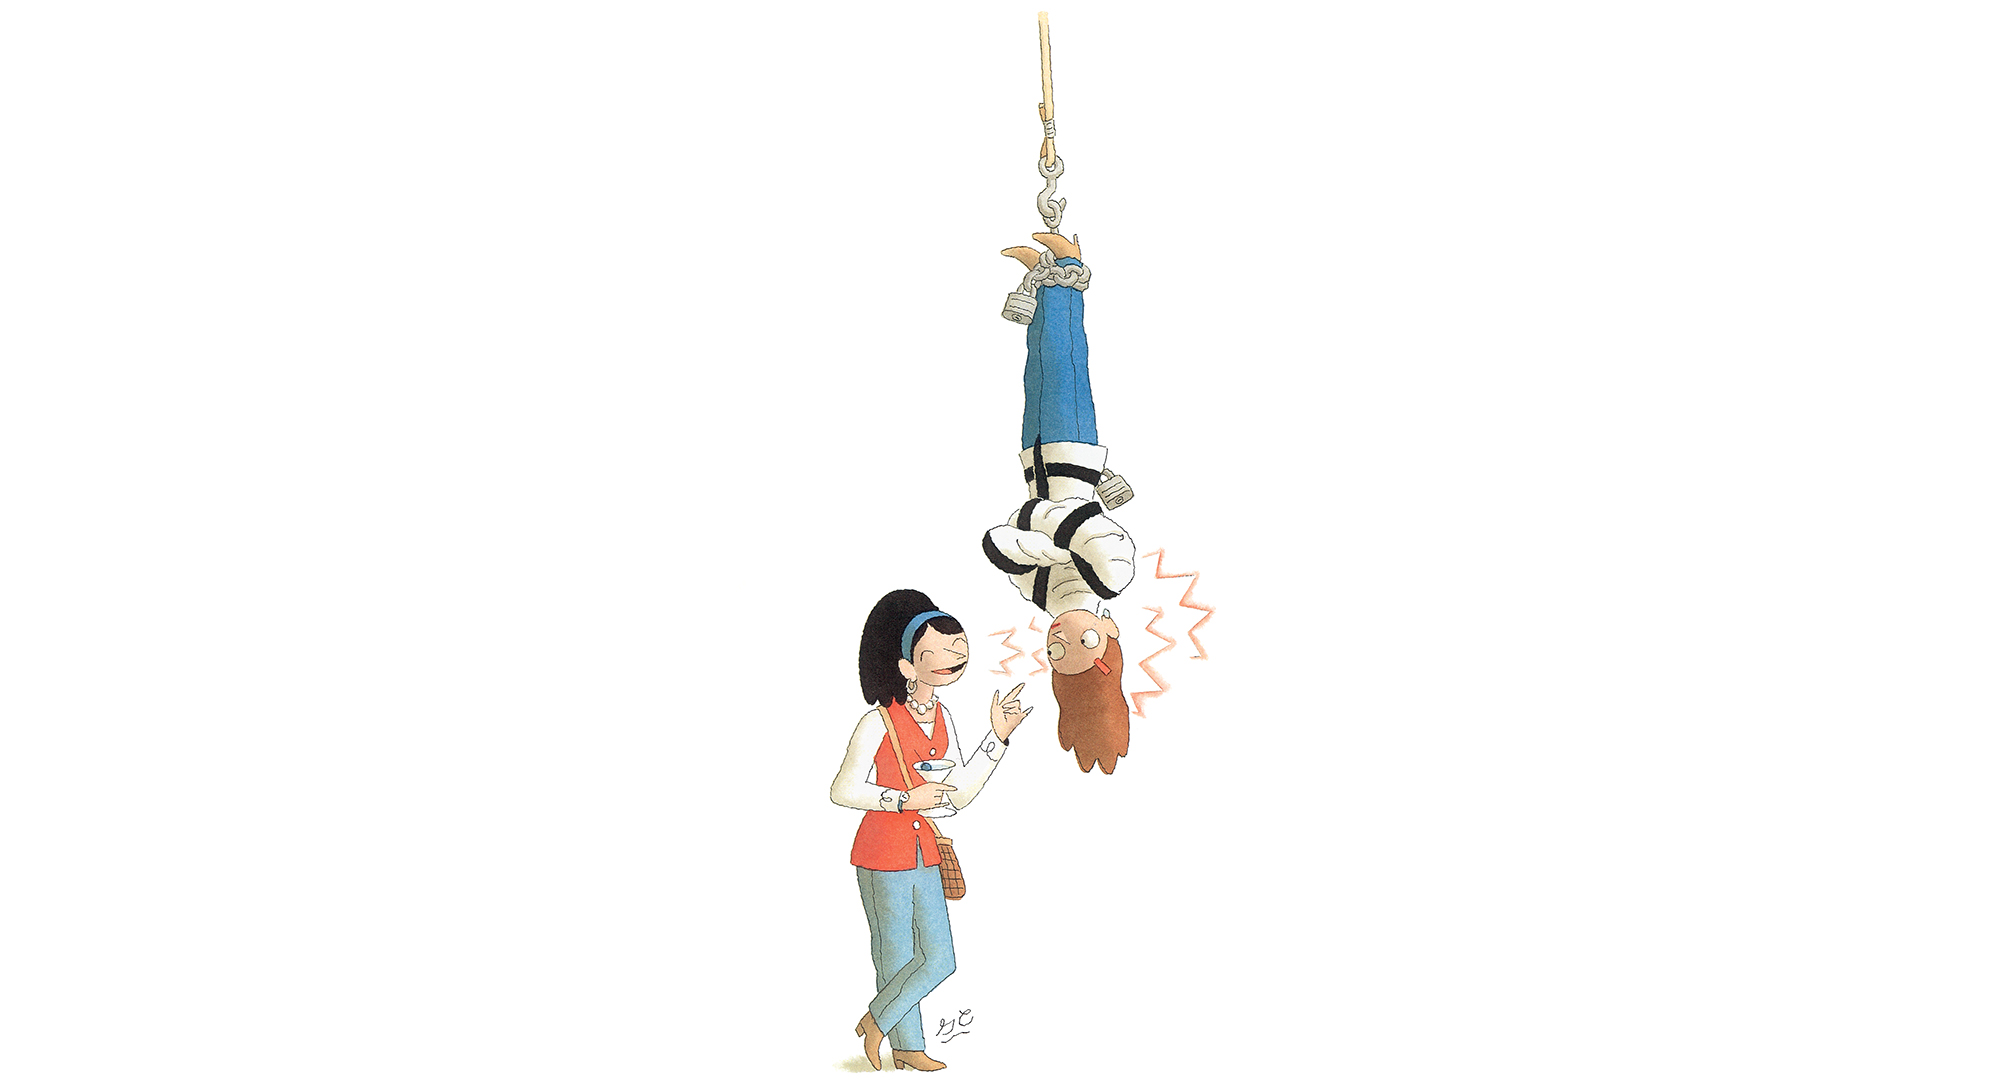 Cartoon woman hanging upside down